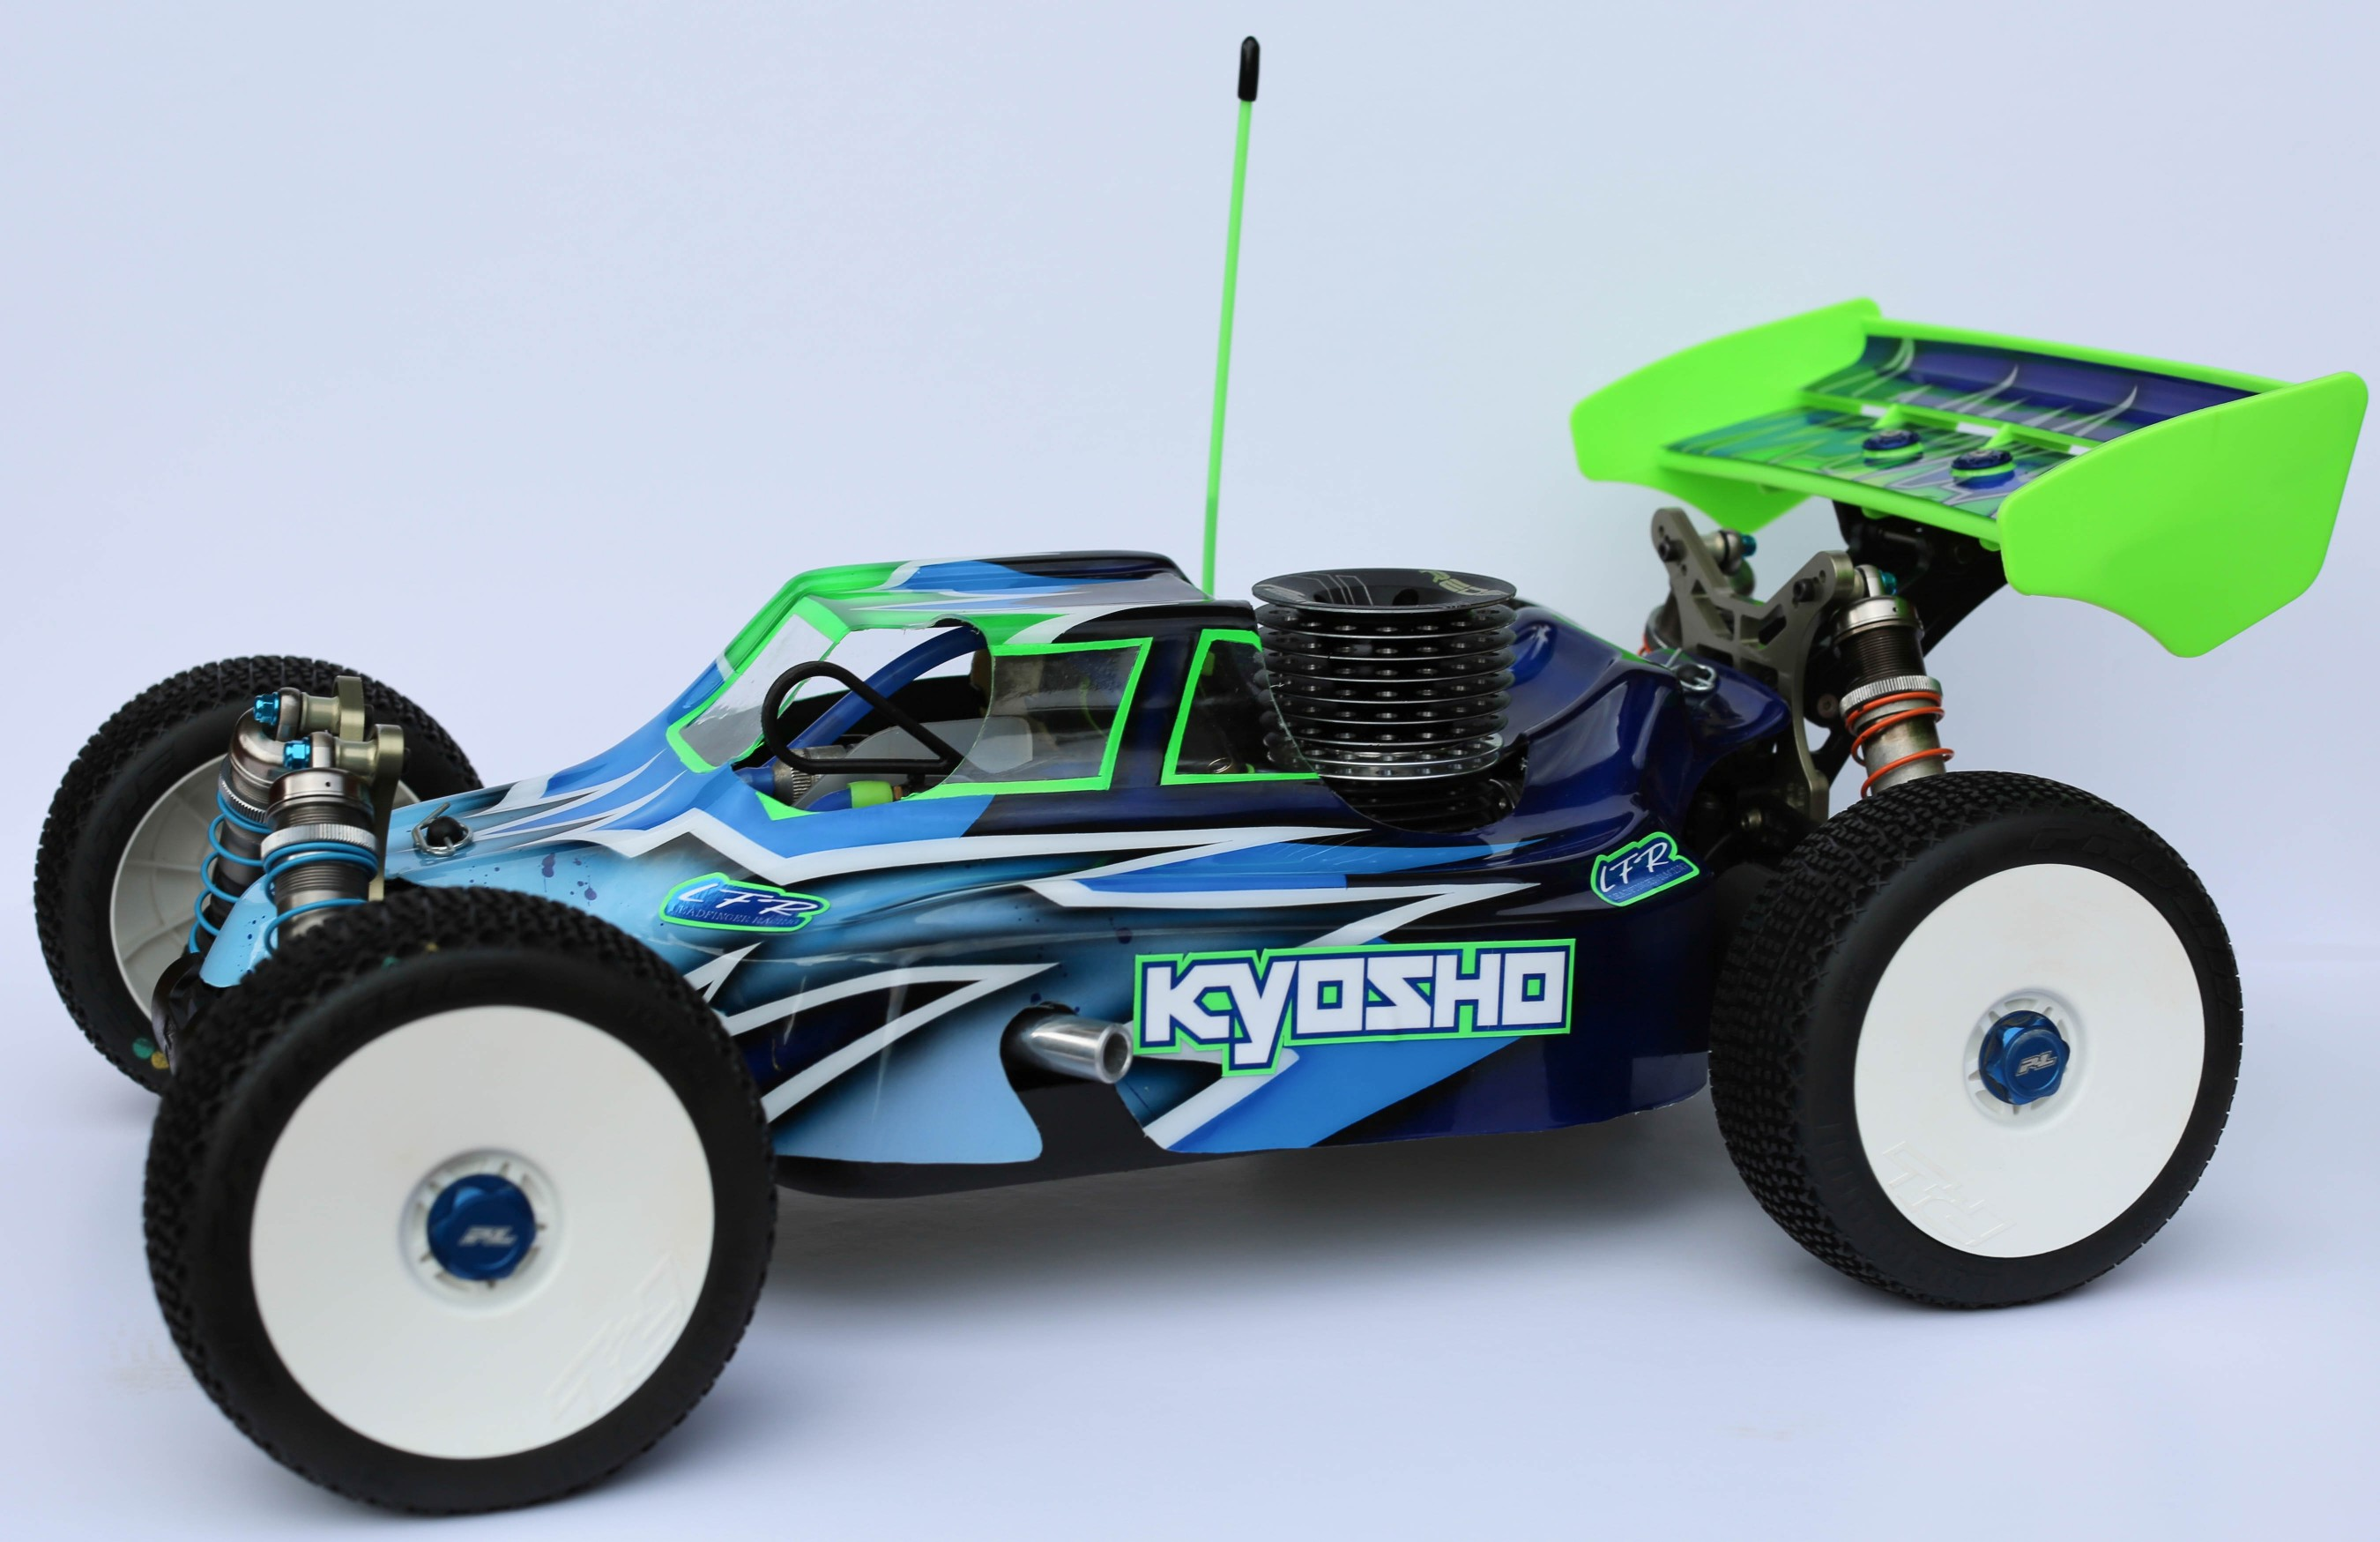 Leadfinger LFR Assassin body (clear) for Kyosho MP9 nitro buggy